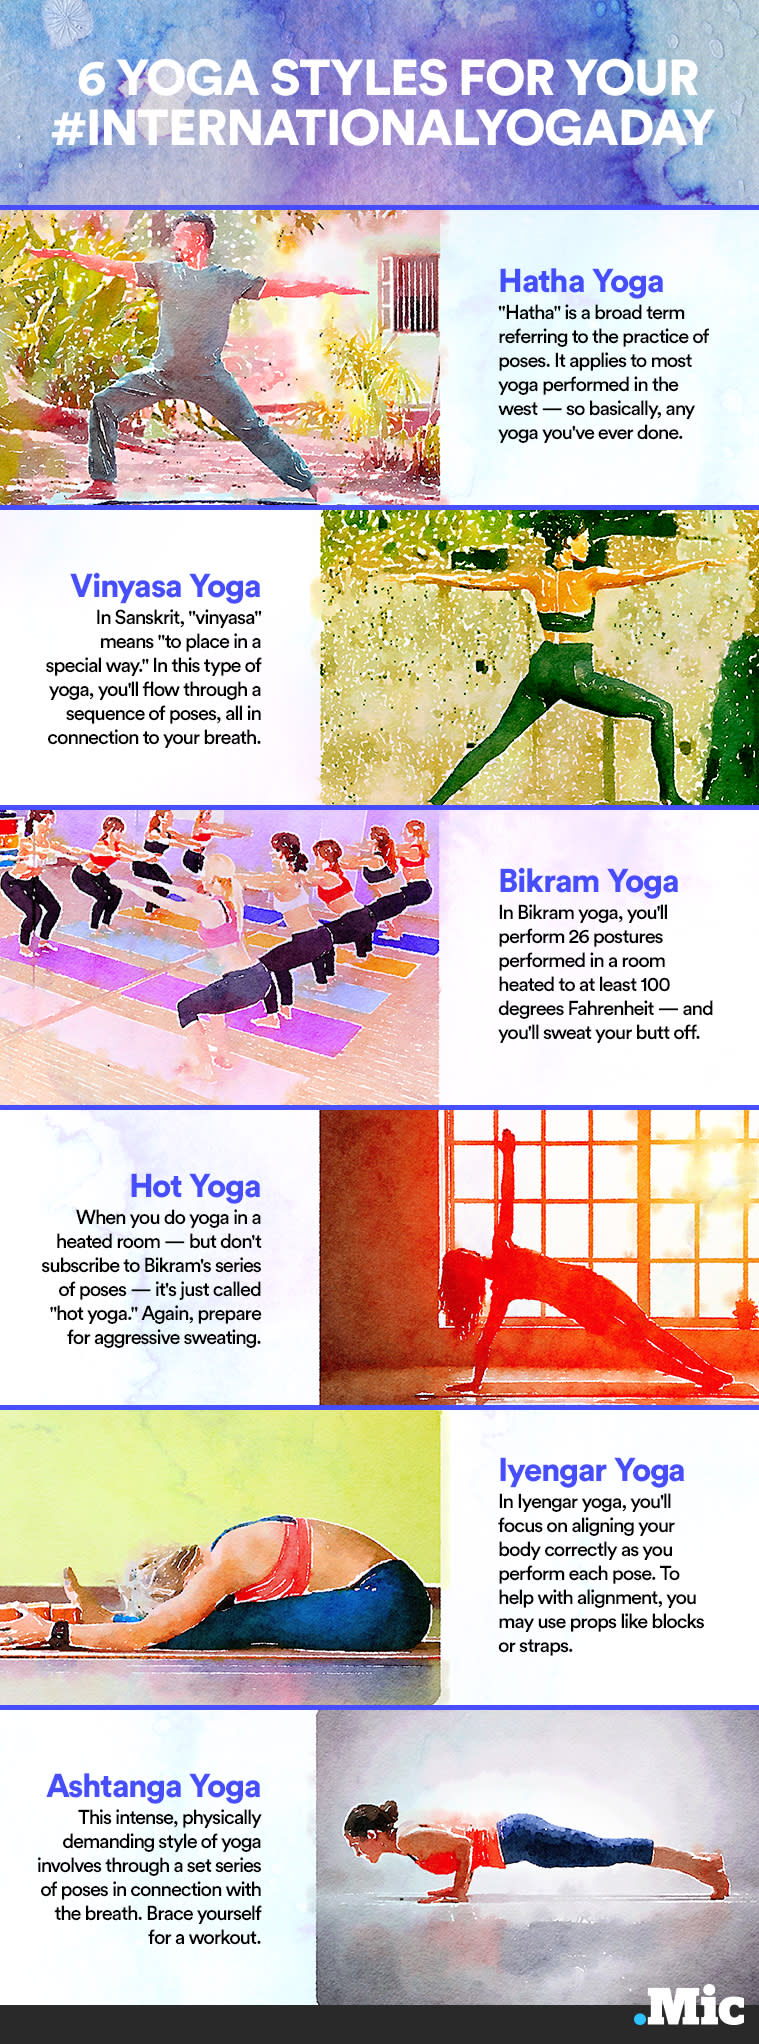 All Types Of Yoga From Bikram To Vinyasa To Iyengar Explained In One Chart